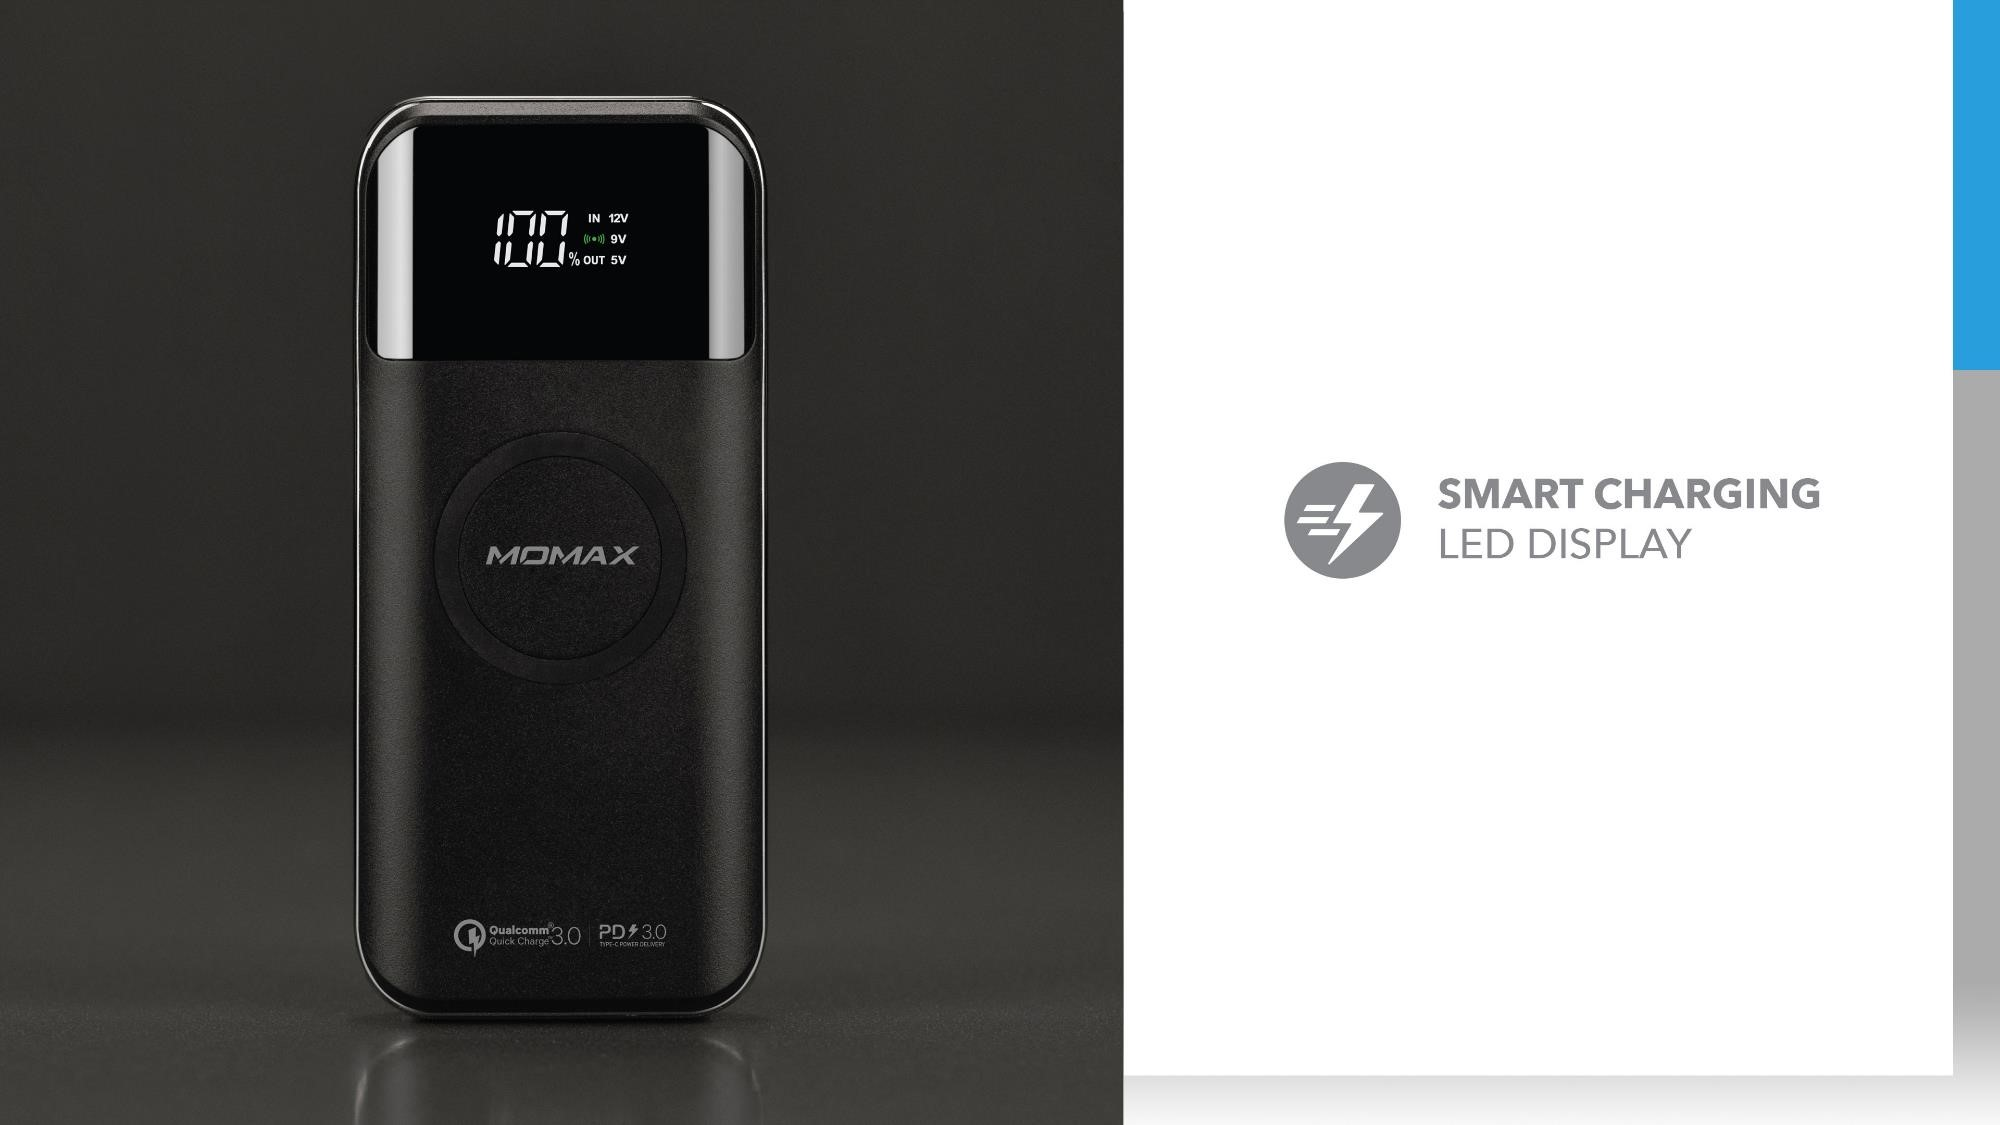 Q.Power Air 2+ Wireless External Battery Pack: Smart Charging LED Display